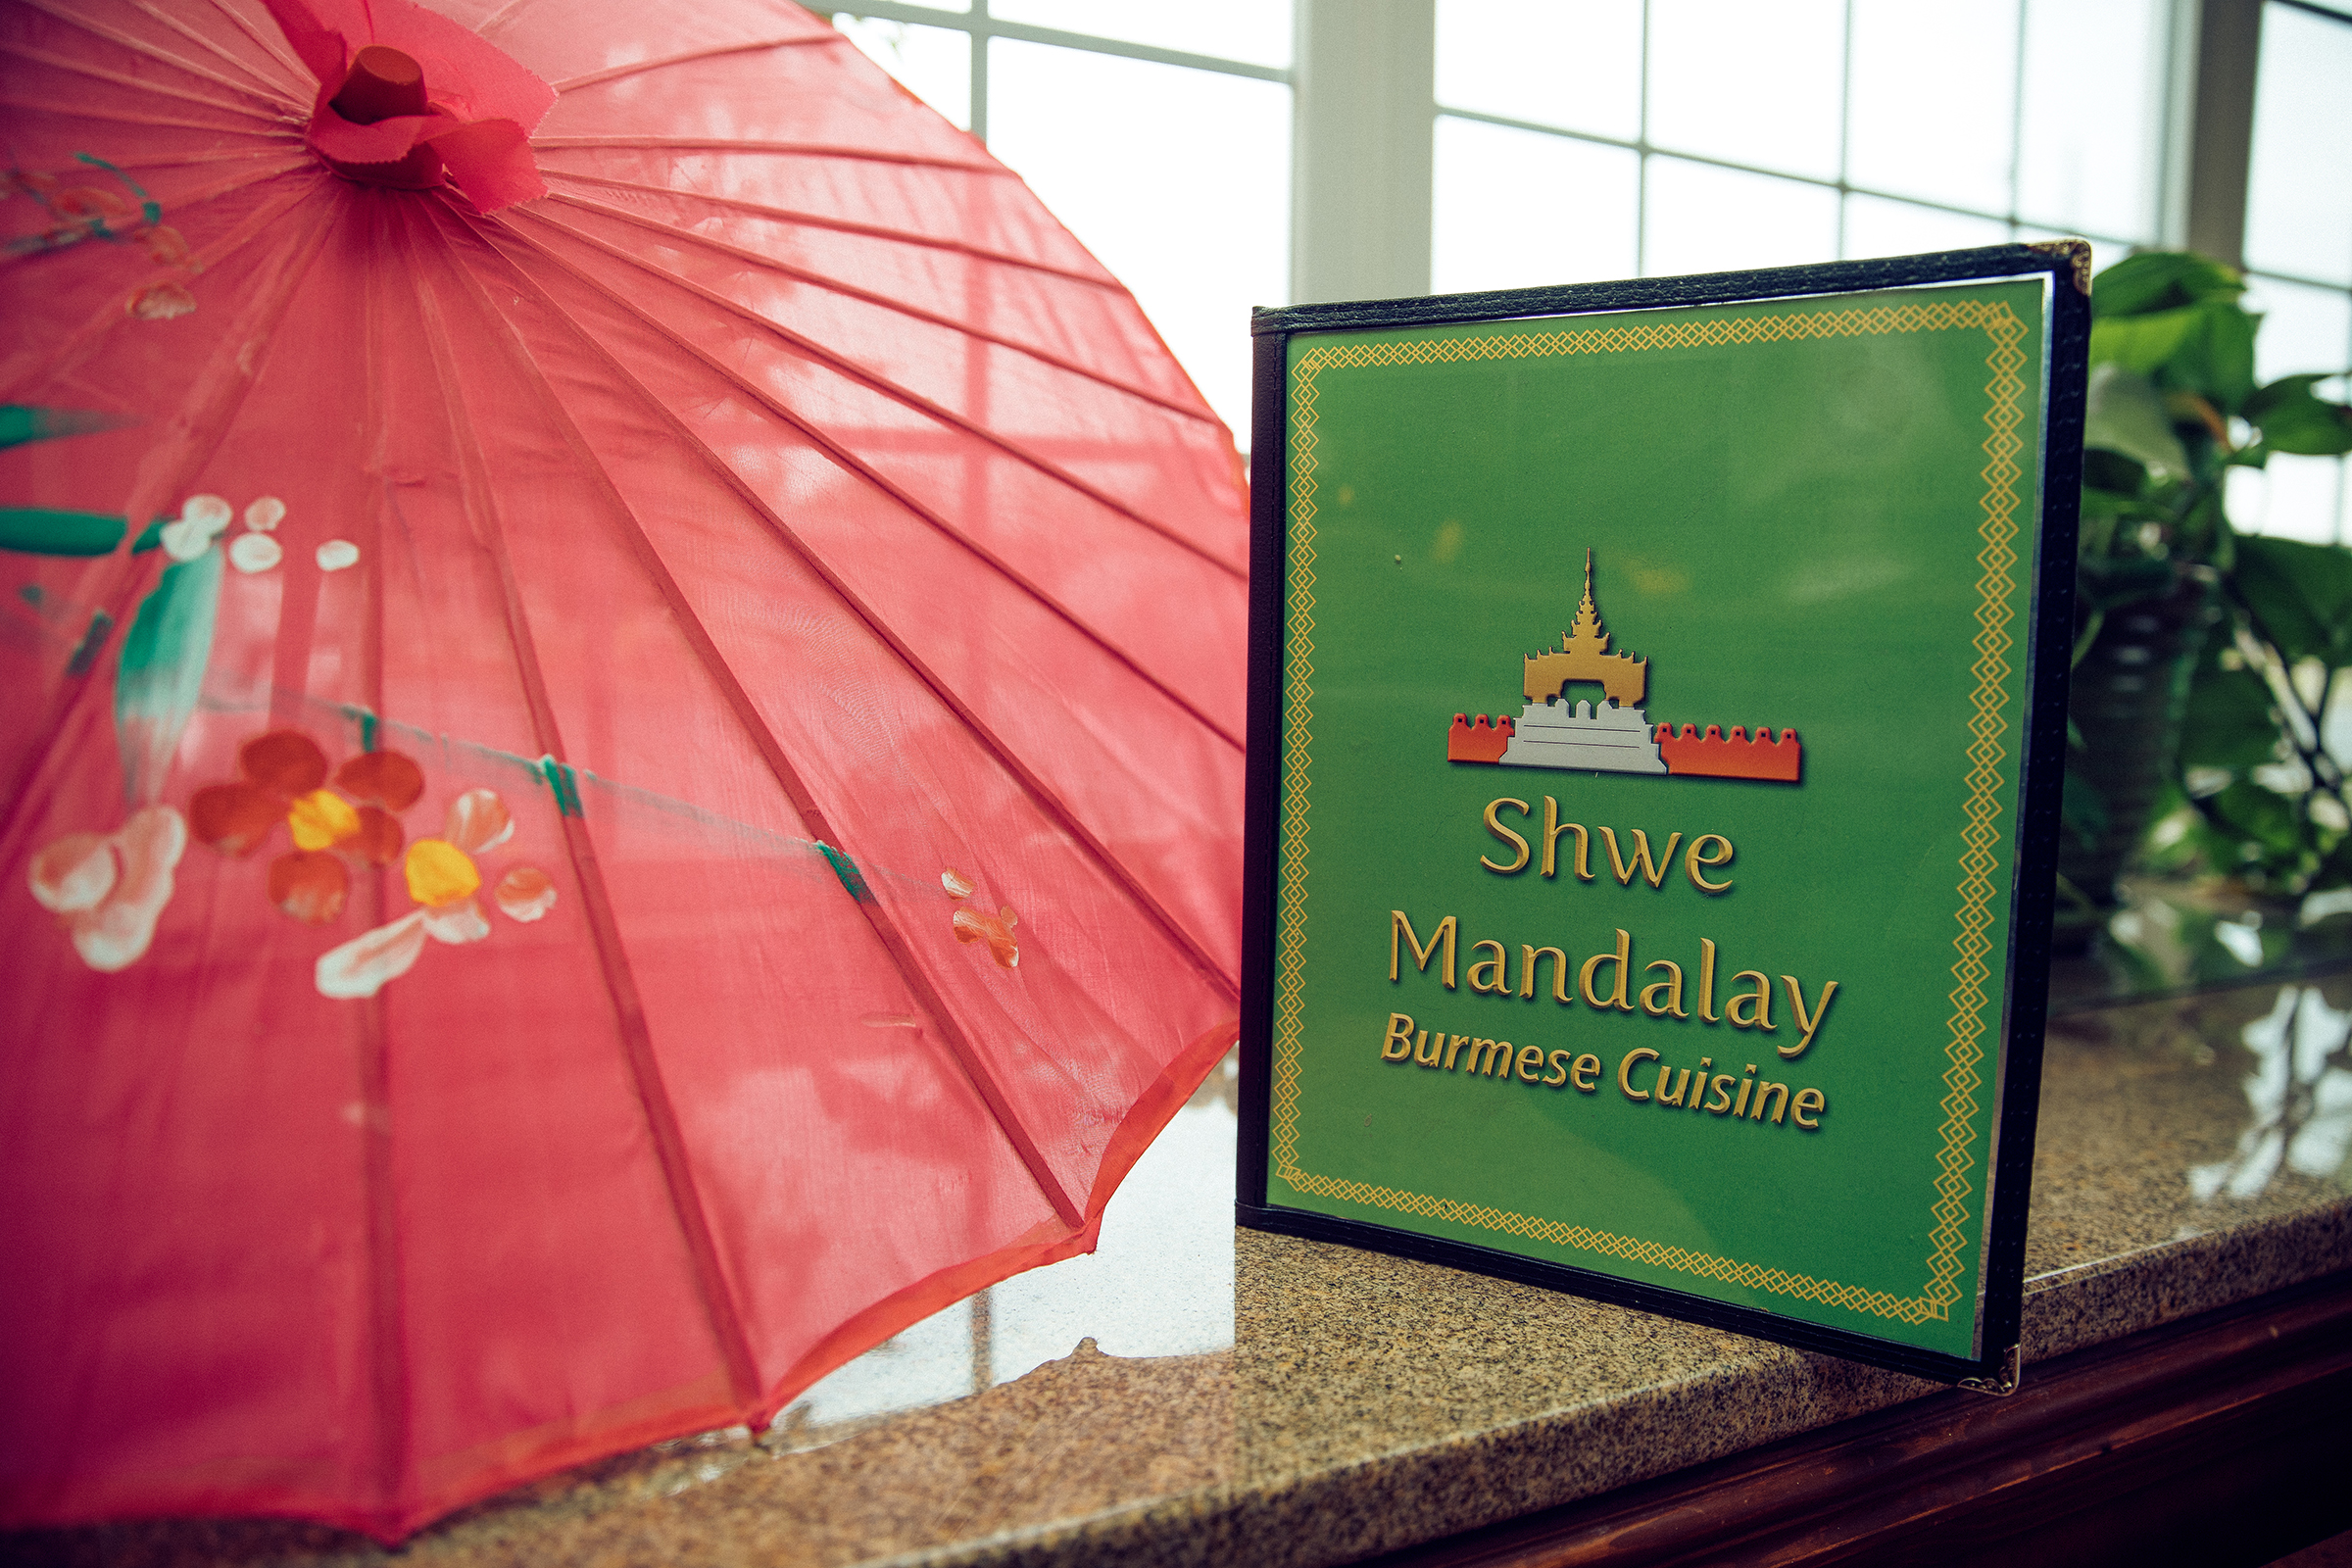 The Shwe Mandalay Burmese Cuisine restaurant menu next to a red traditional Asian umbrella in Battle Creek, Michigan.